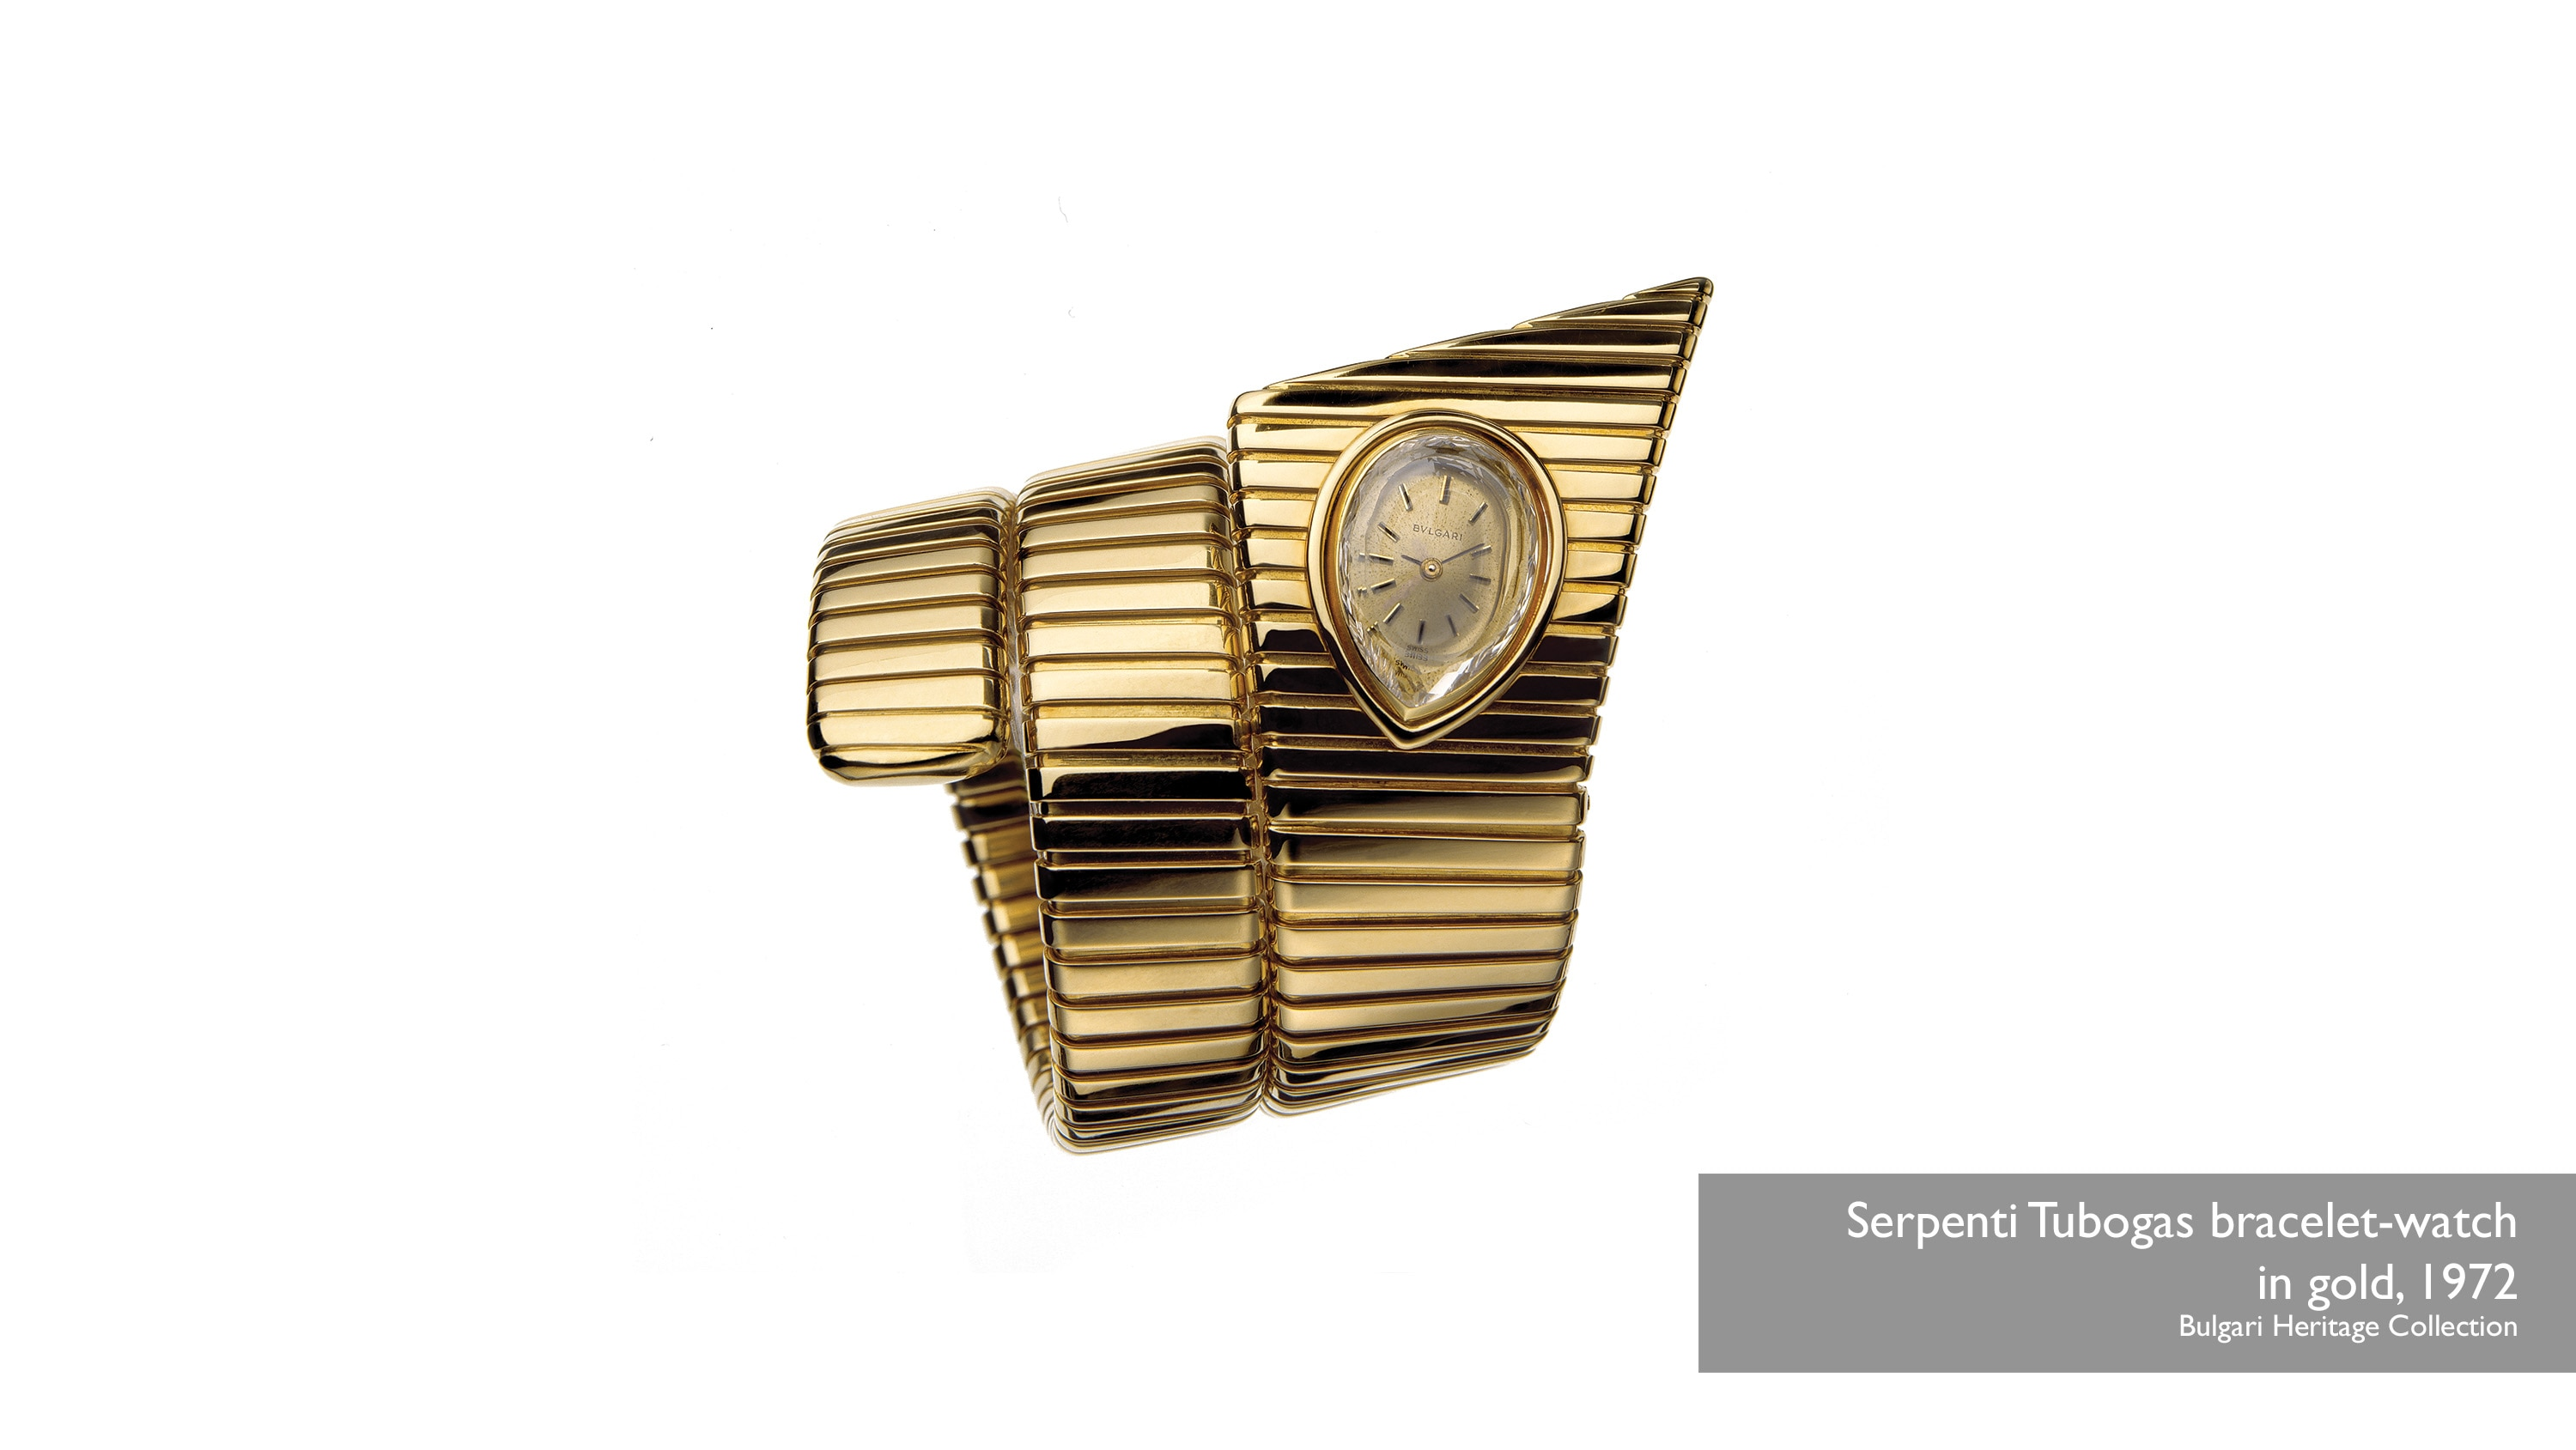 Serpenti Tubogas bracelet-watch in gold, 1972 Bulgari Heritage Collection